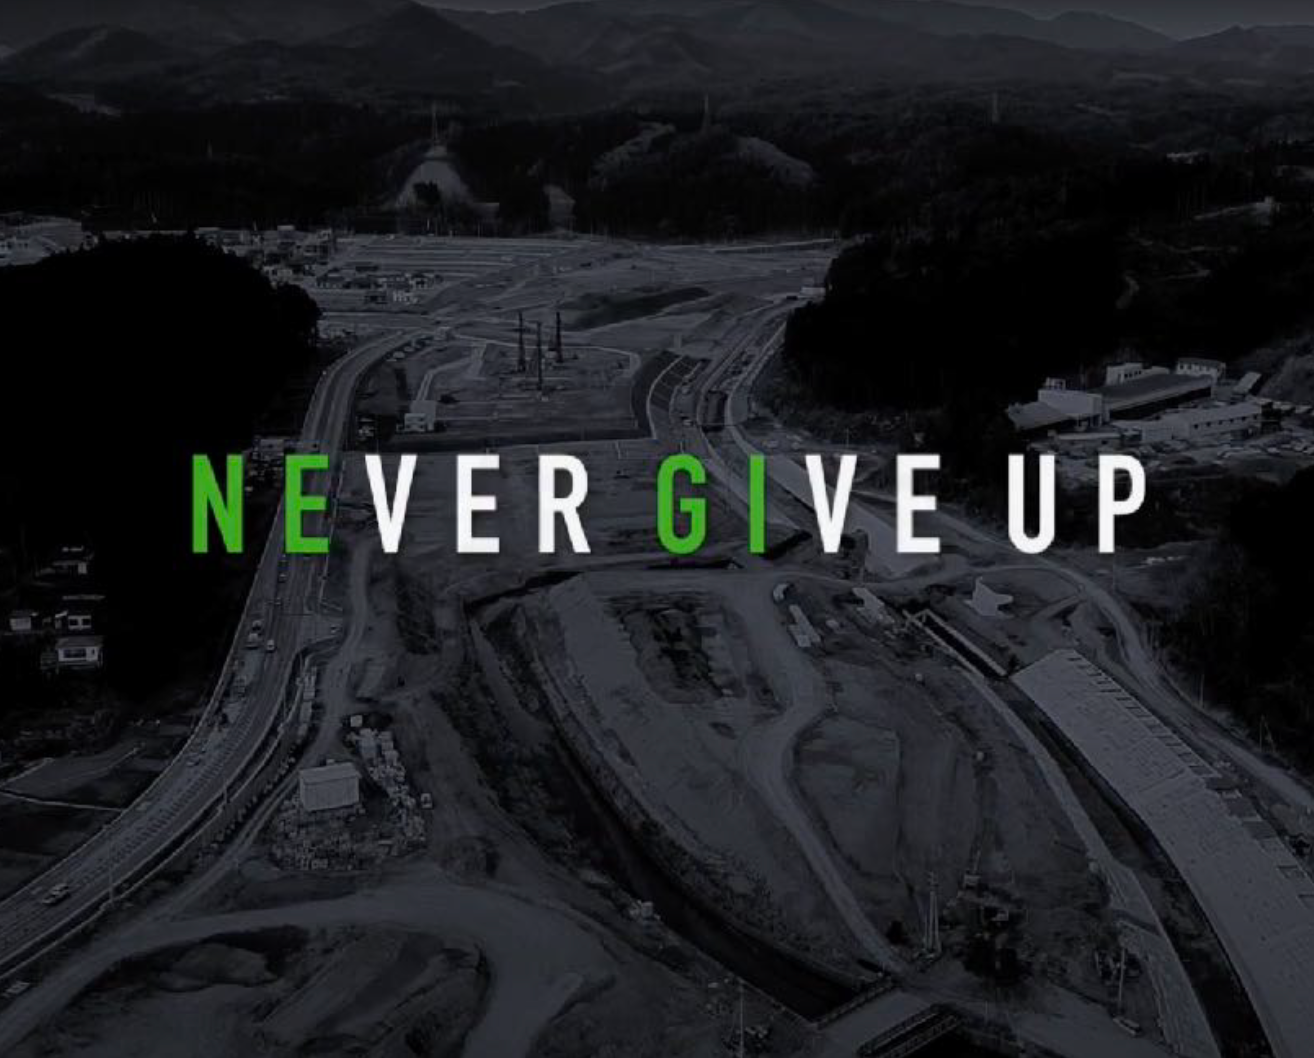 NEVER GIVE UP 南三陸ねぎ